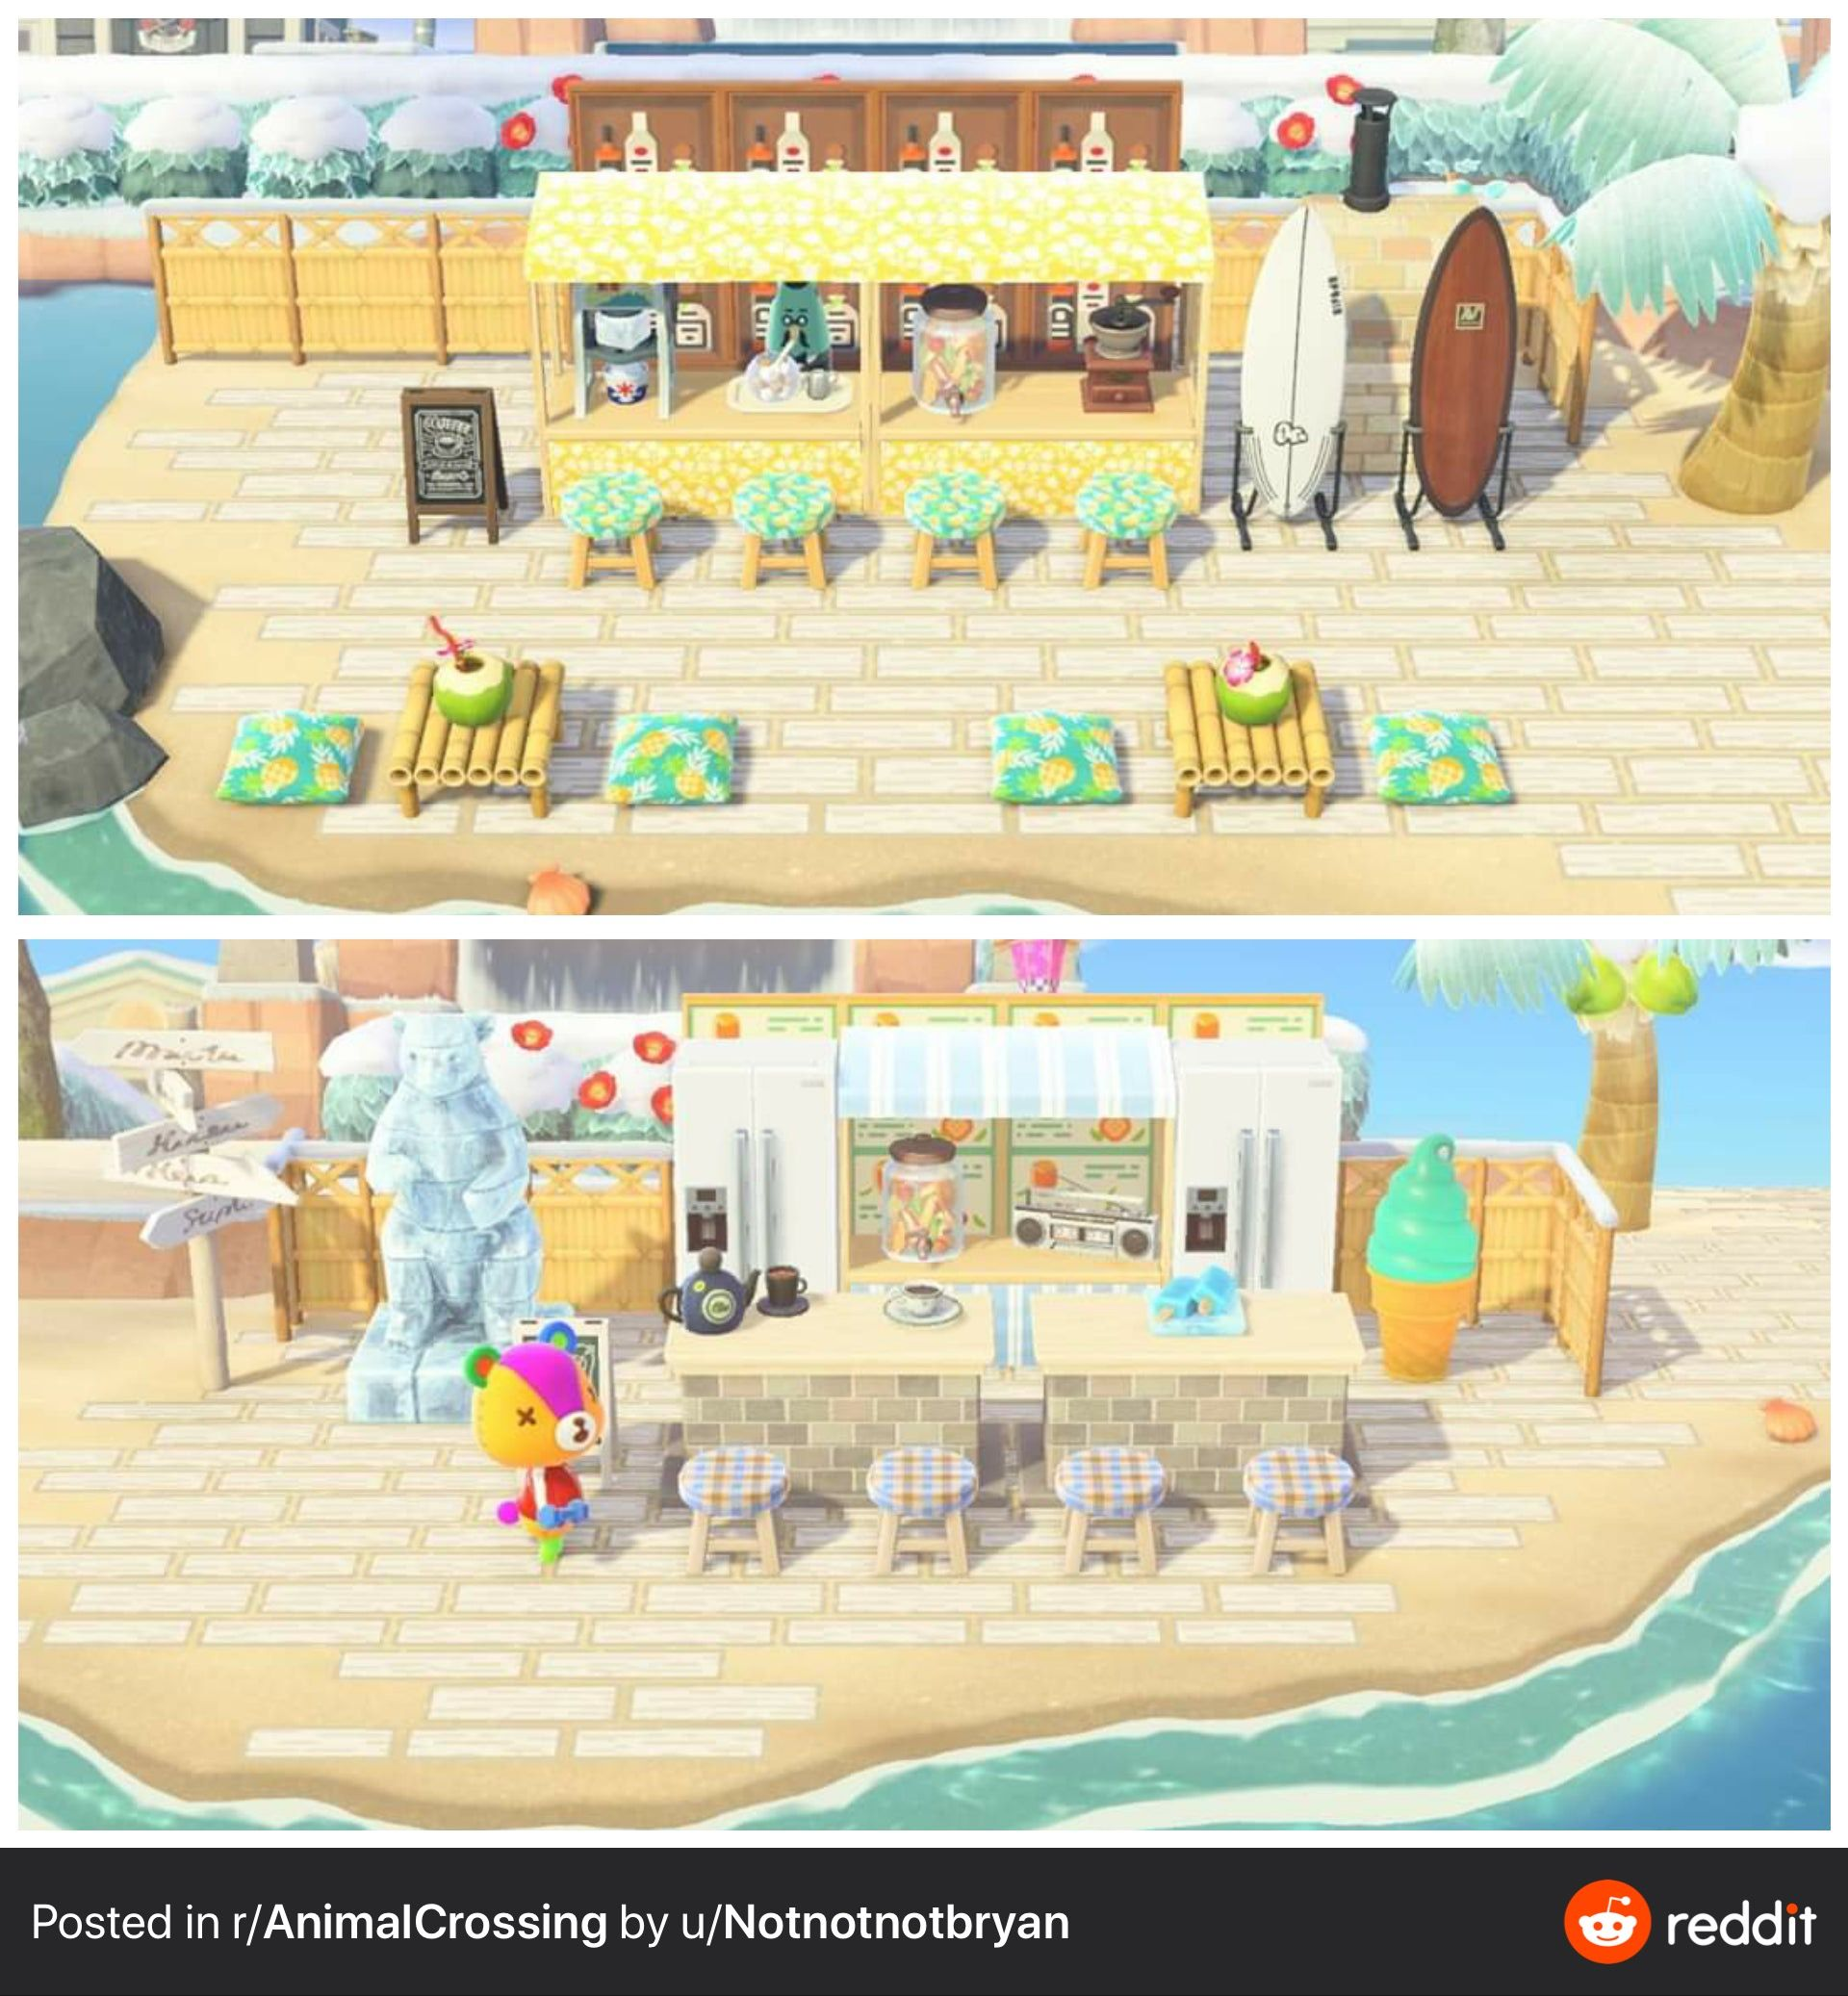 Pin by Sarah on animal crossing landscape insp in 2020 ...